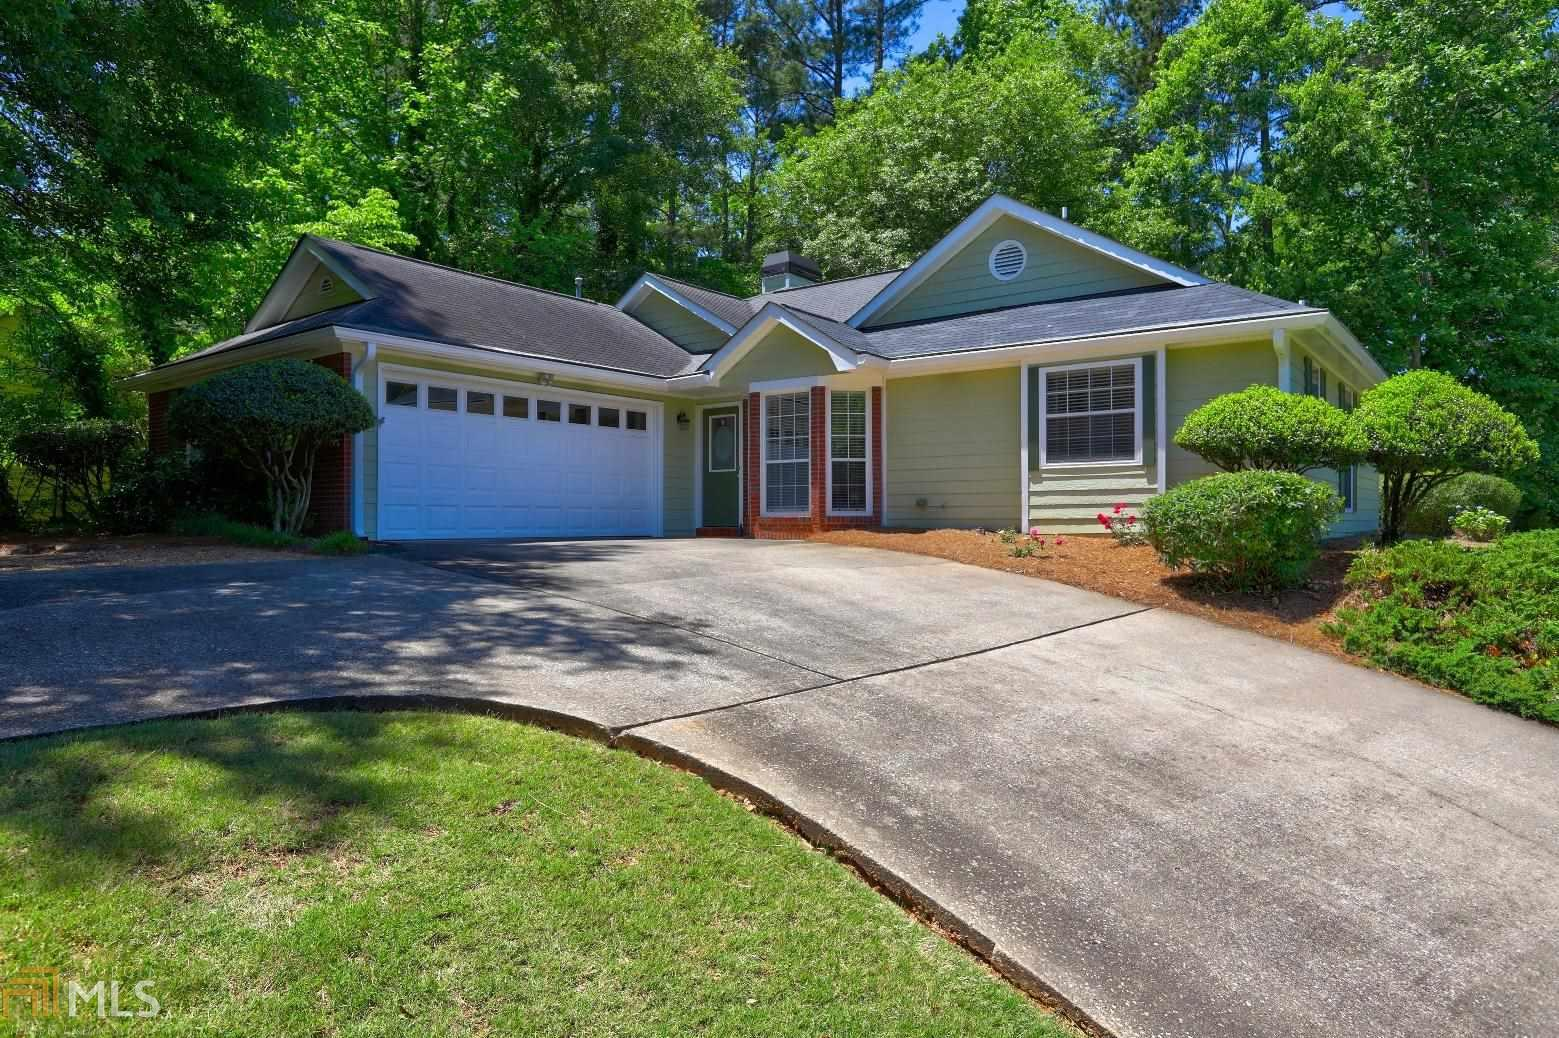 Image for property 539 Horseshoe Cir, Stockbridge, GA 30281